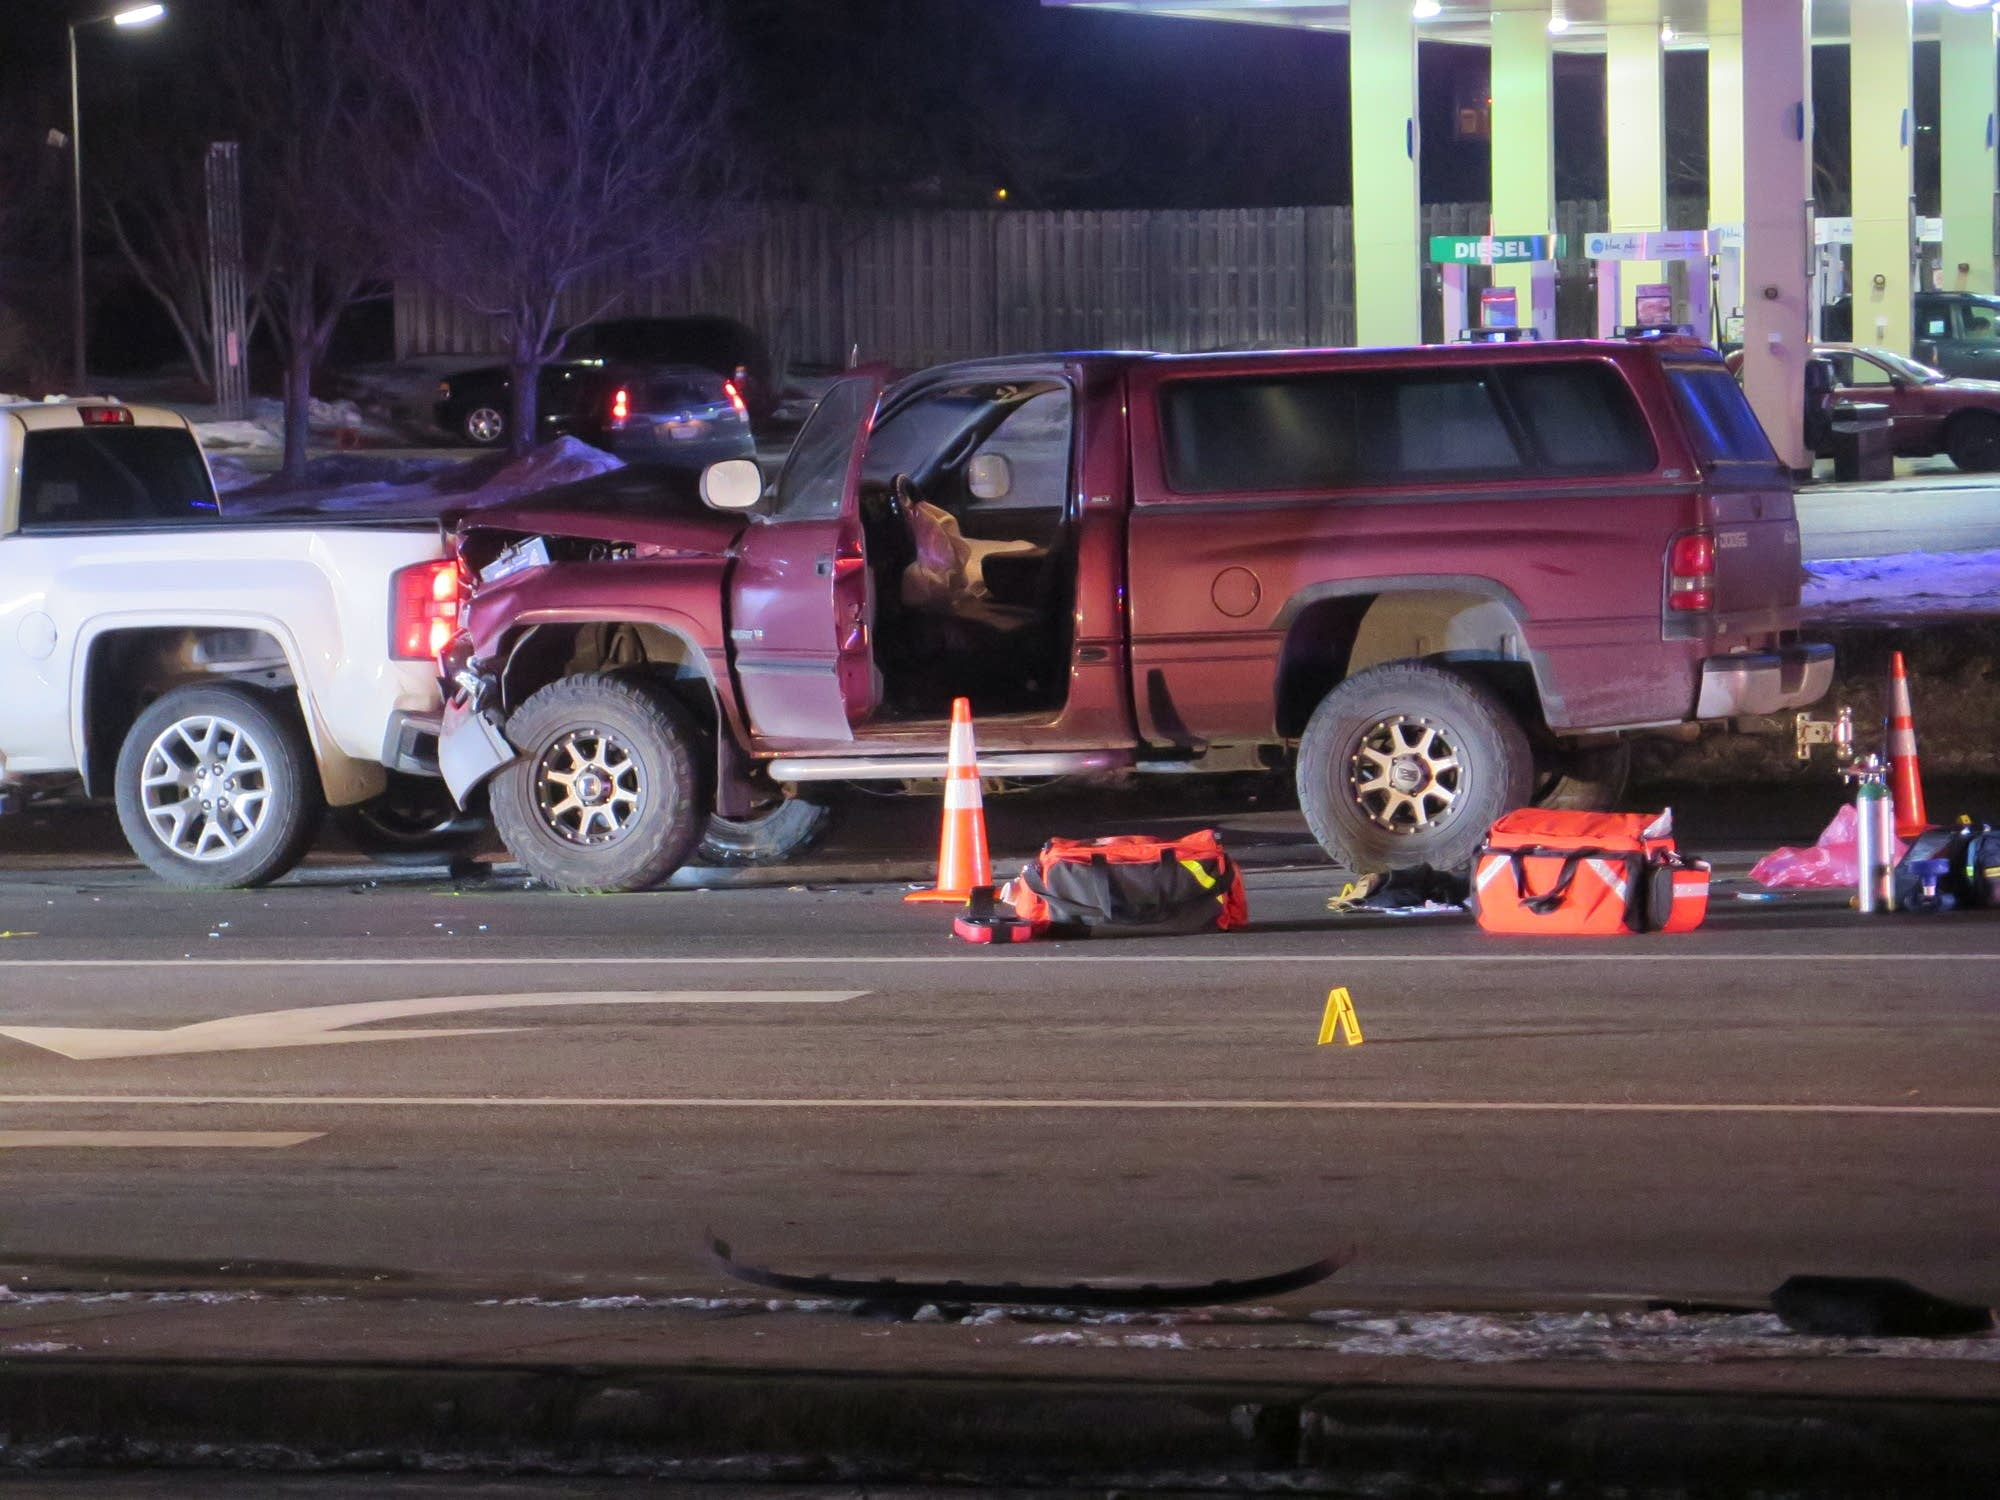 Attempted stabbing, shooting after rear-end crash in Fridley